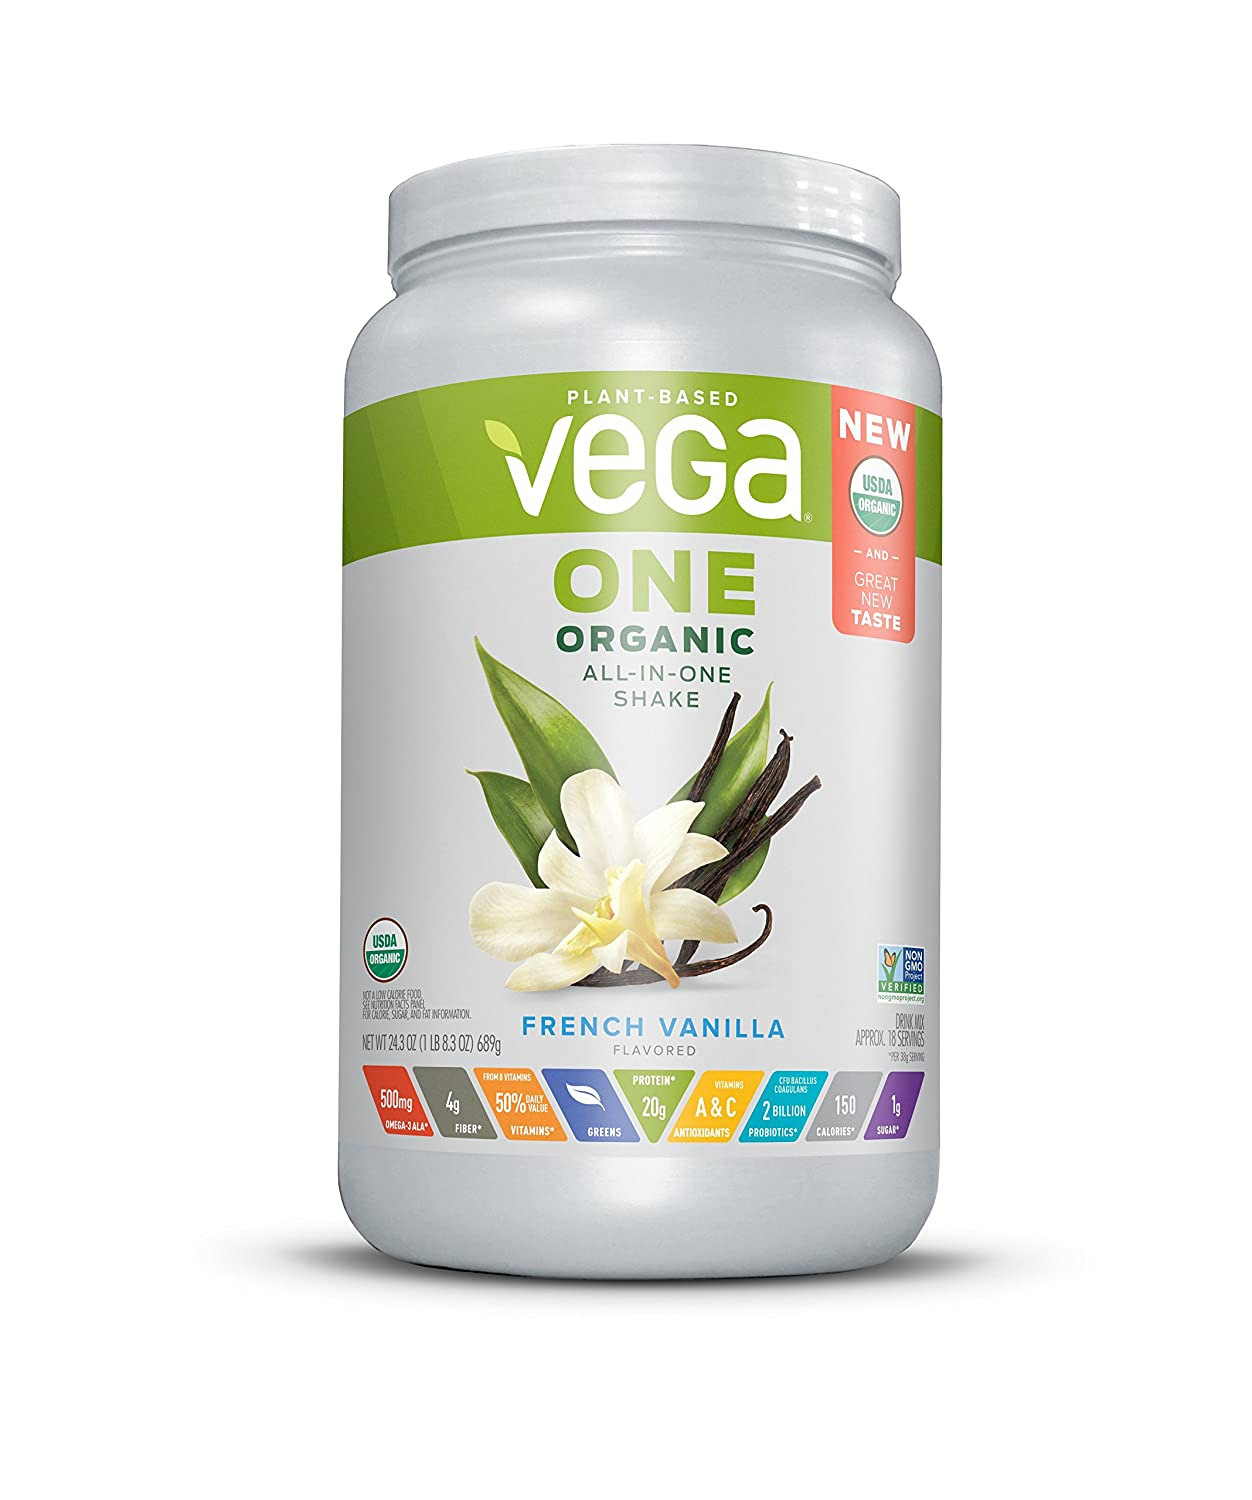 Vega One Organic All-in-One Shake, Plant Based Non Dairy Protein Powder 24.3 oz B079J39C1H